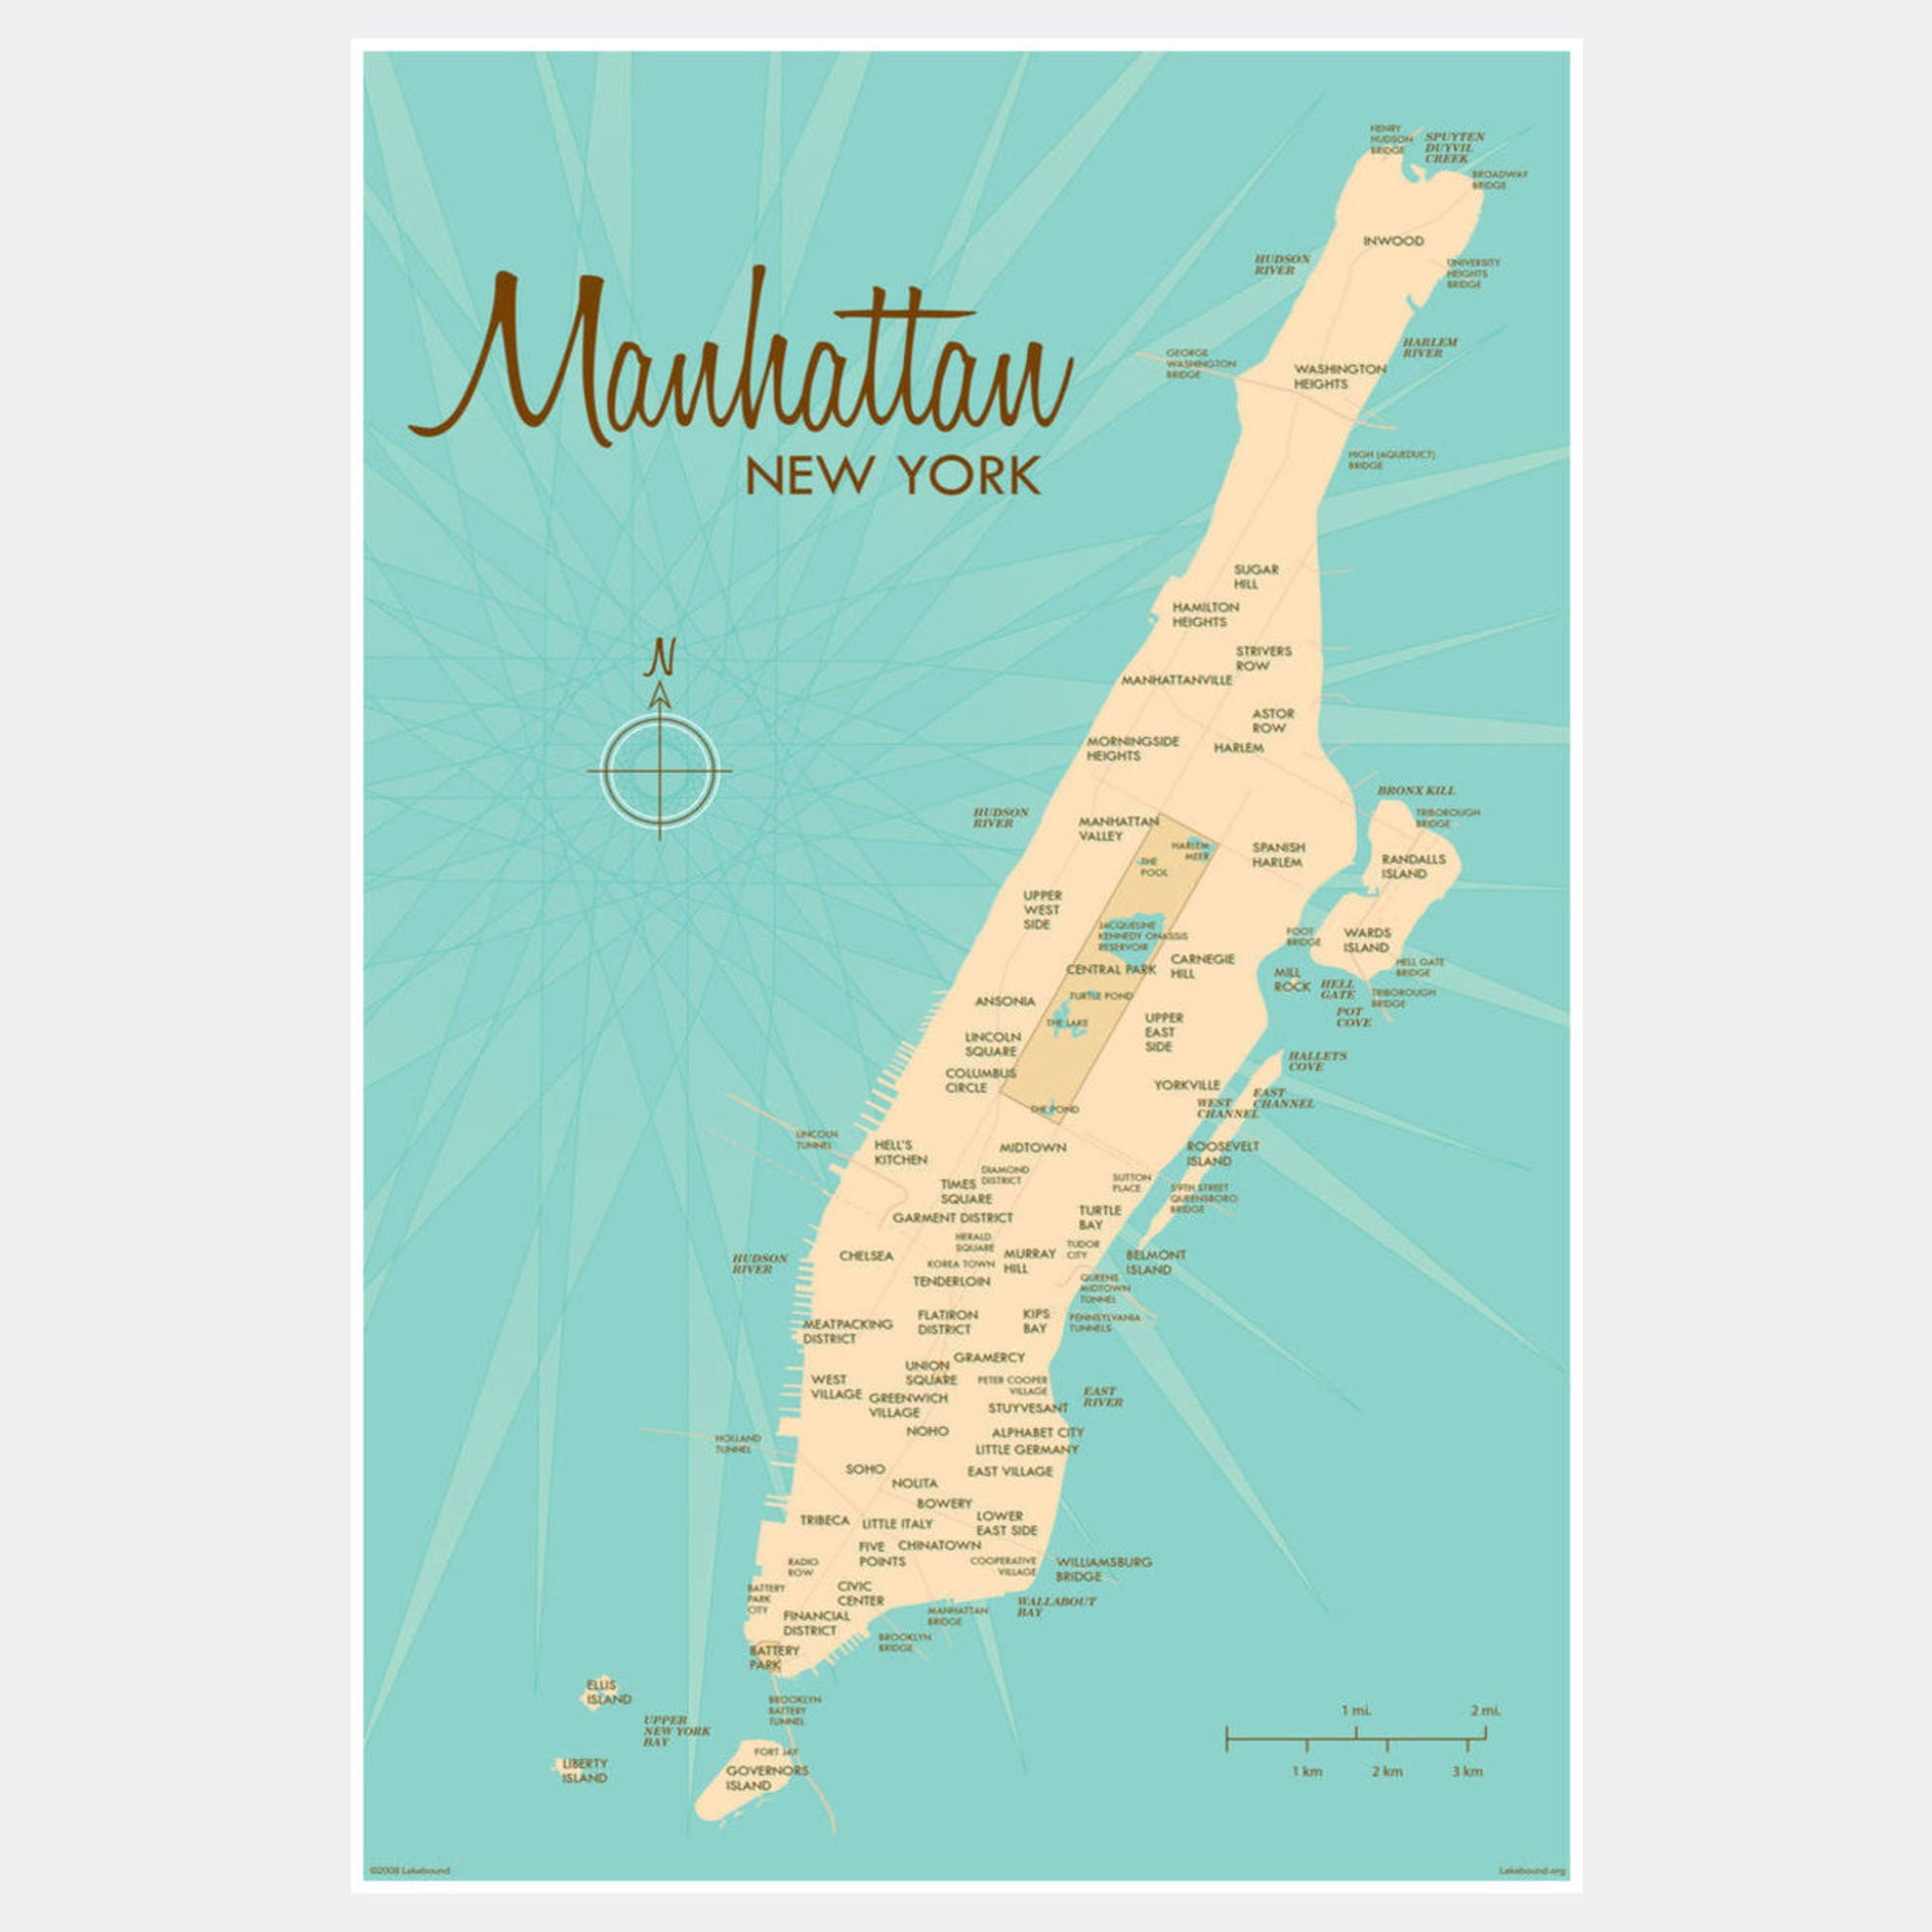 Manhattan Map, Paper Print on nassau county map, roosevelt island map, randall's island map, north brother island map, murray hill map, harlem map, ny map, lincoln center map, throgs neck bridge map, new york map, times square map, central park map, brooklyn map, path map, west village map, fire island map, long island map, queens map, jersey city map, madison square garden map,